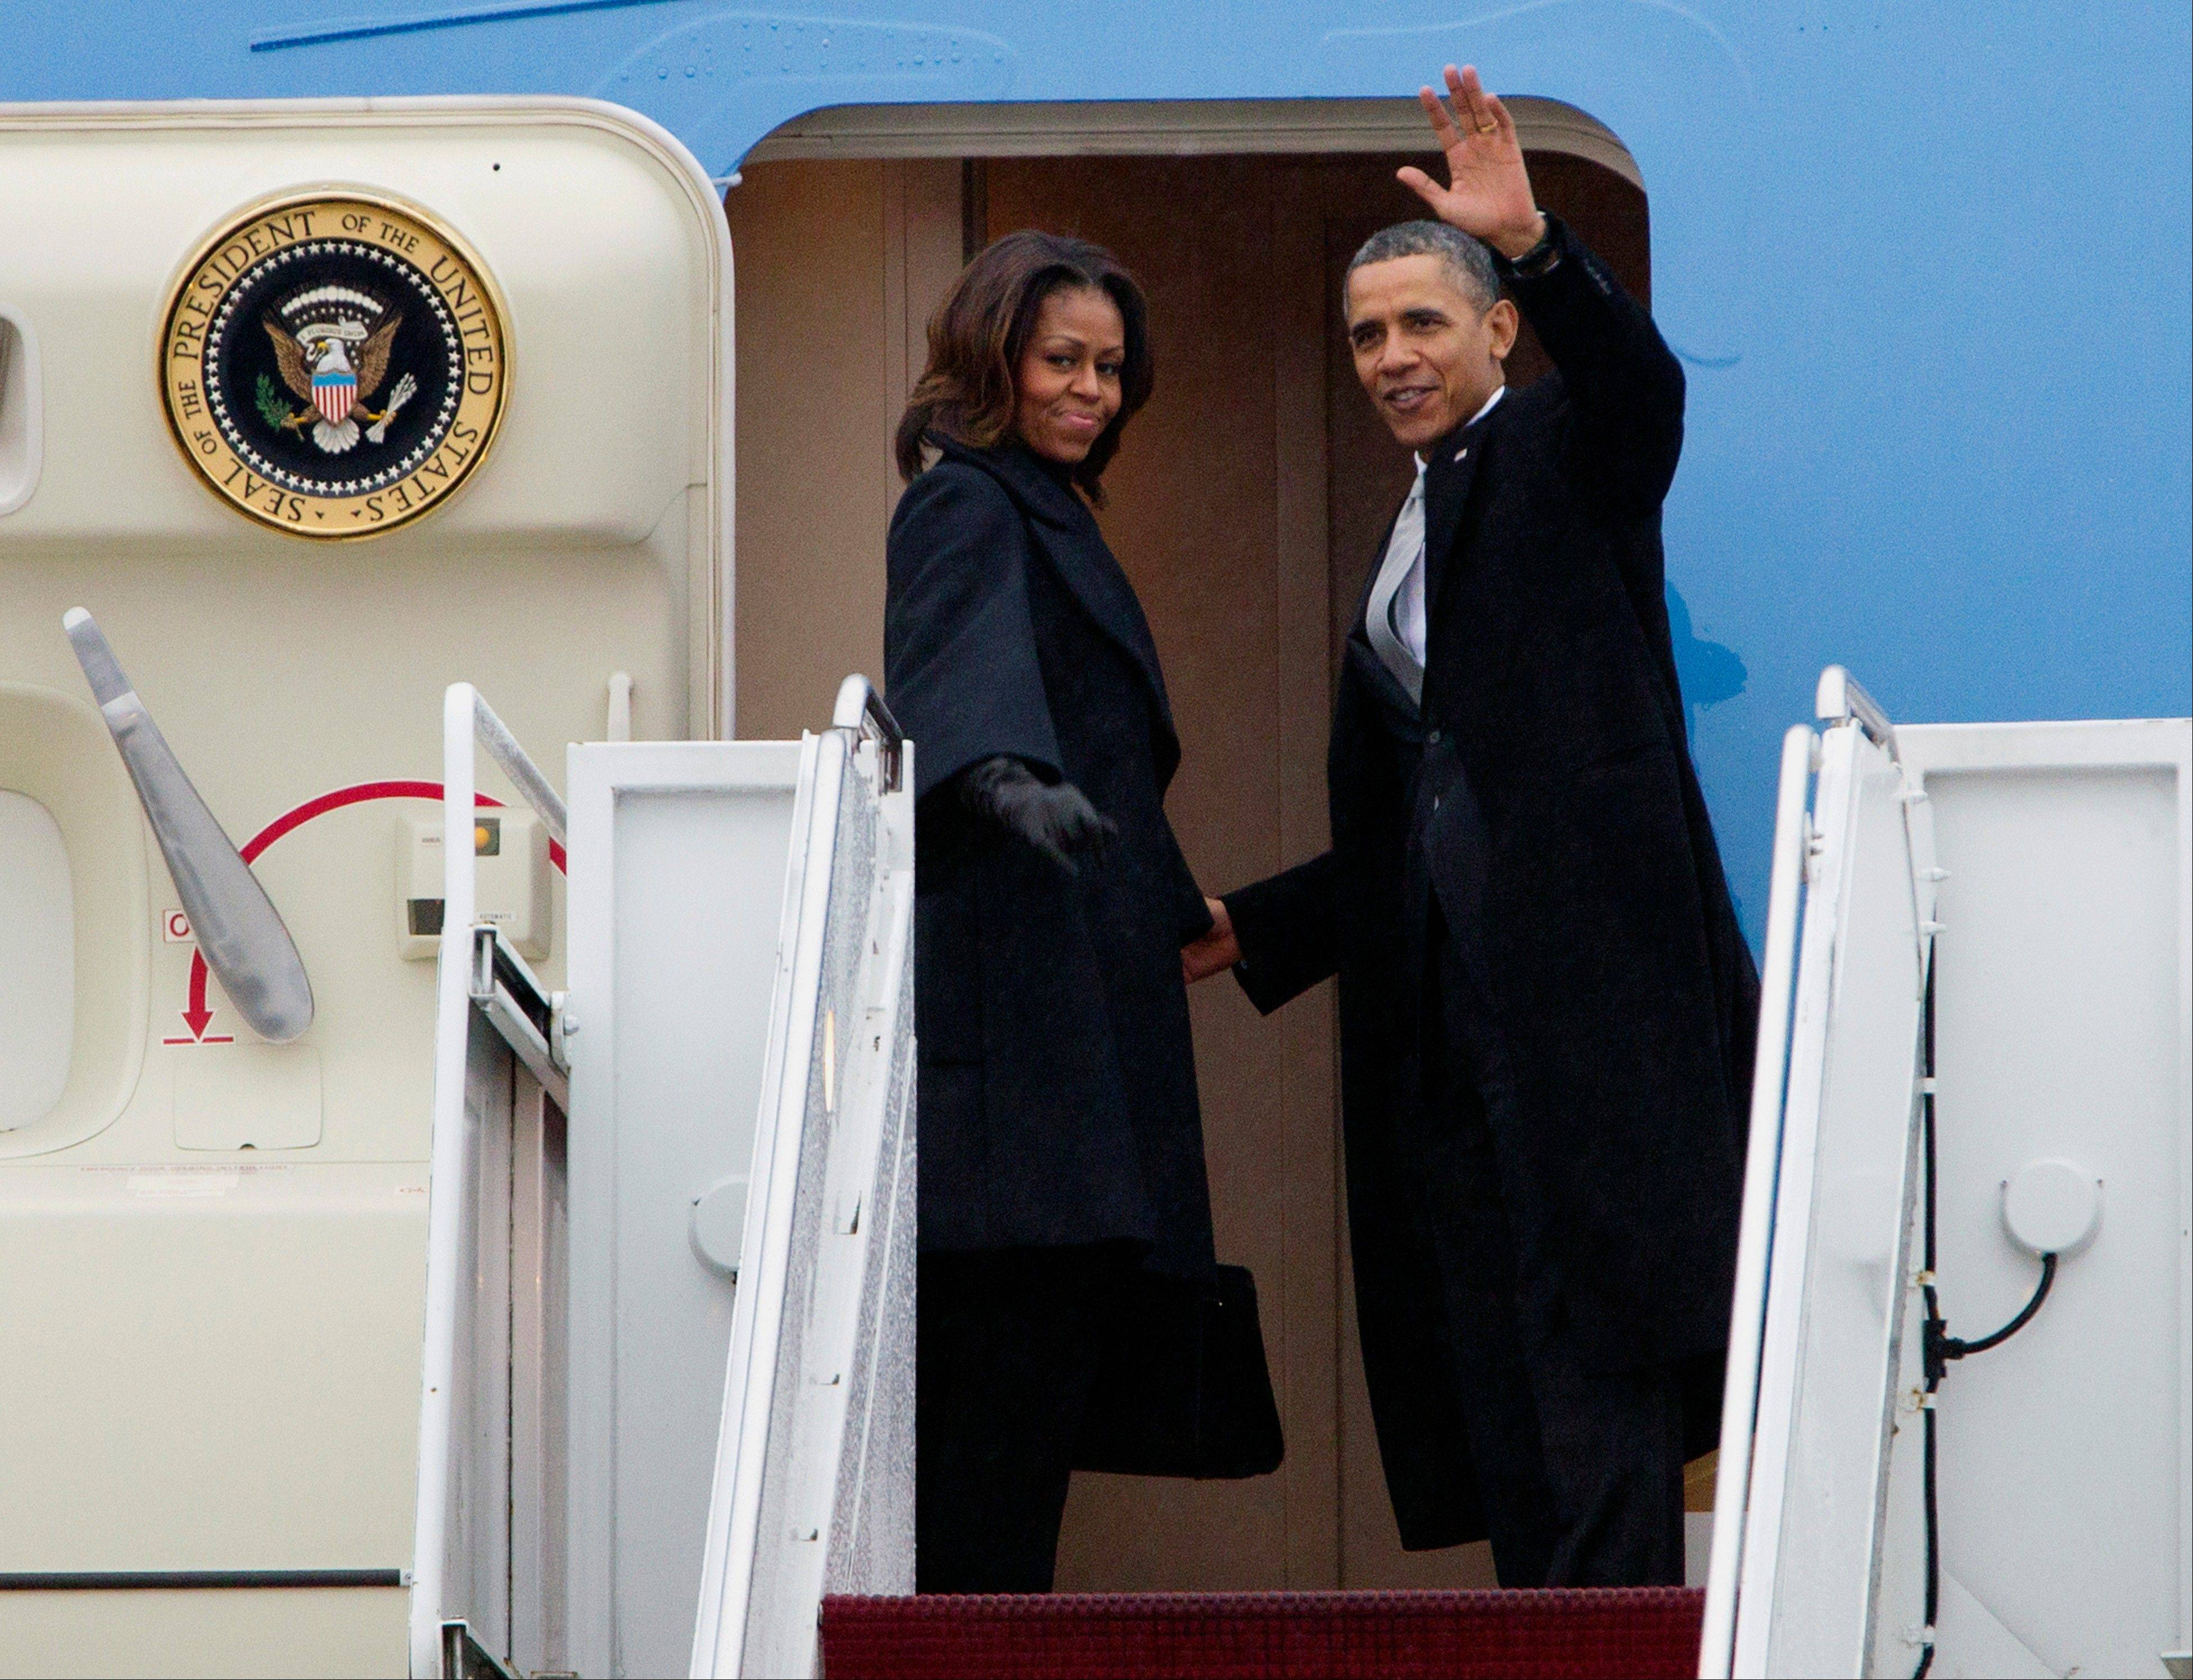 President Barack Obama, accompanied by first lady Michelle Obama, waves prior to boarding Air Force One at Andrews Air Force Base, Md., Monday before traveling to South Africa for a memorial service in honor of Nelson Mandela.